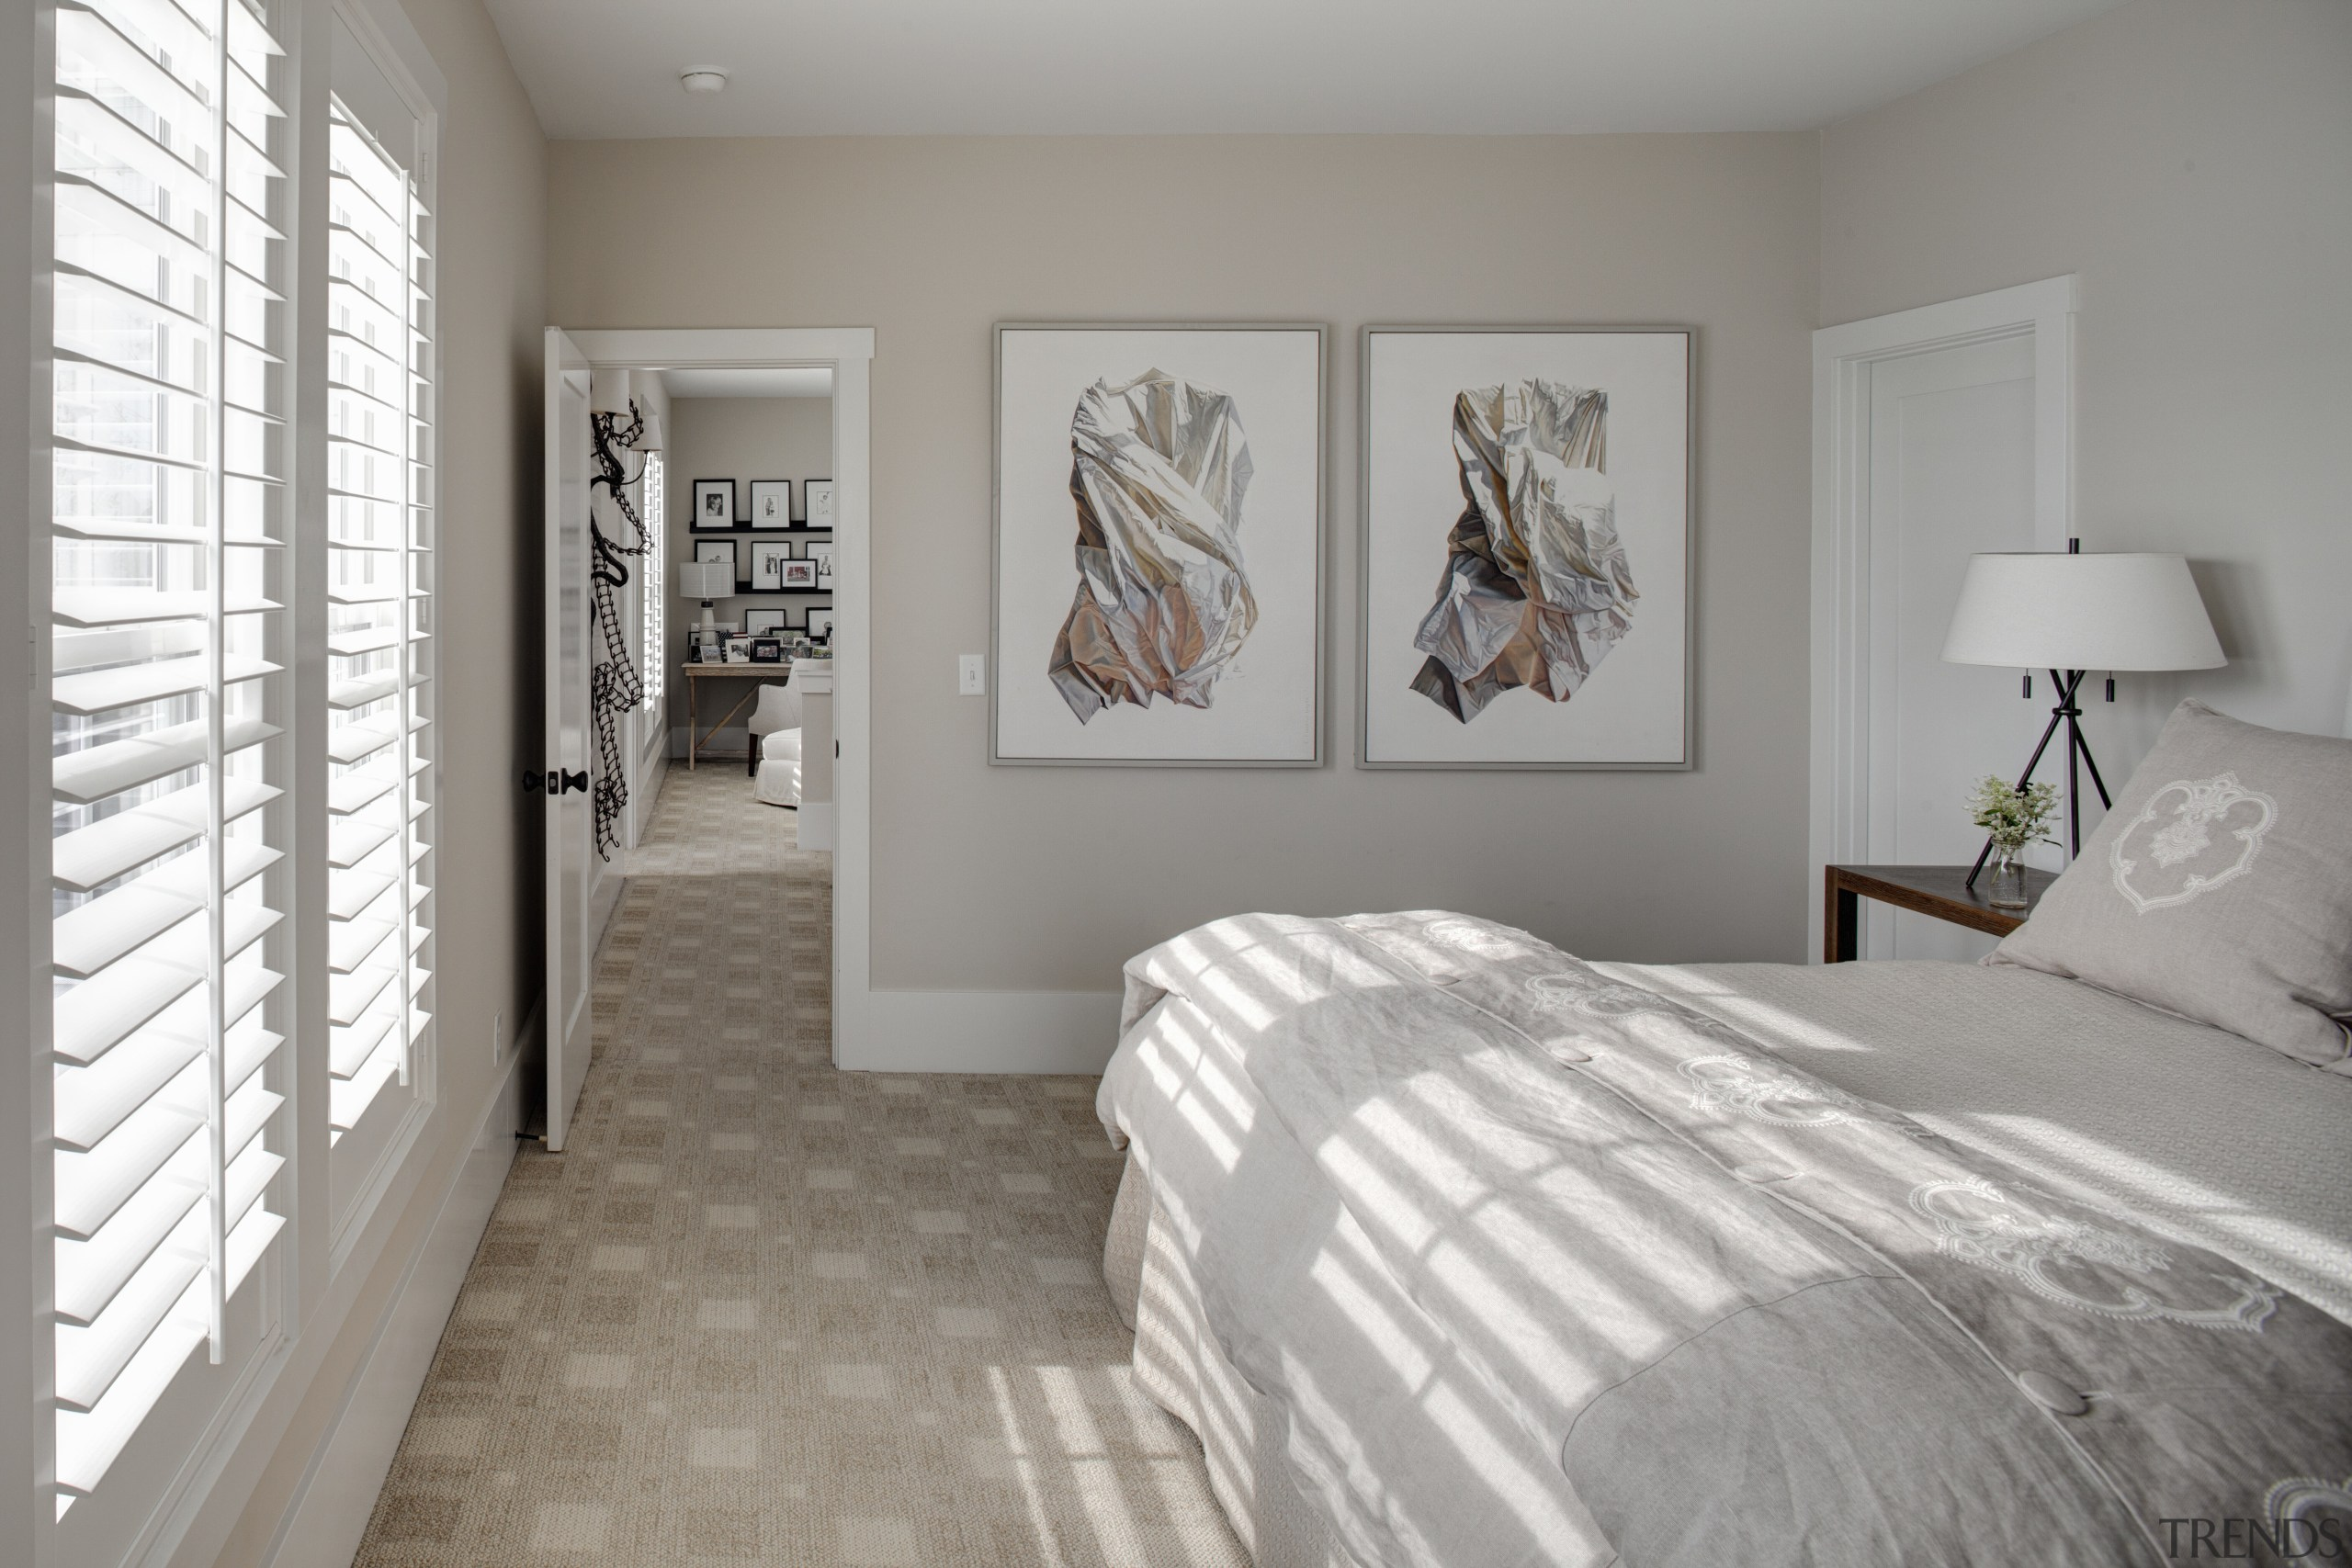 White, wooden shutters filter light into this traditional bedroom, ceiling, floor, flooring, home, interior design, real estate, room, wall, window, gray